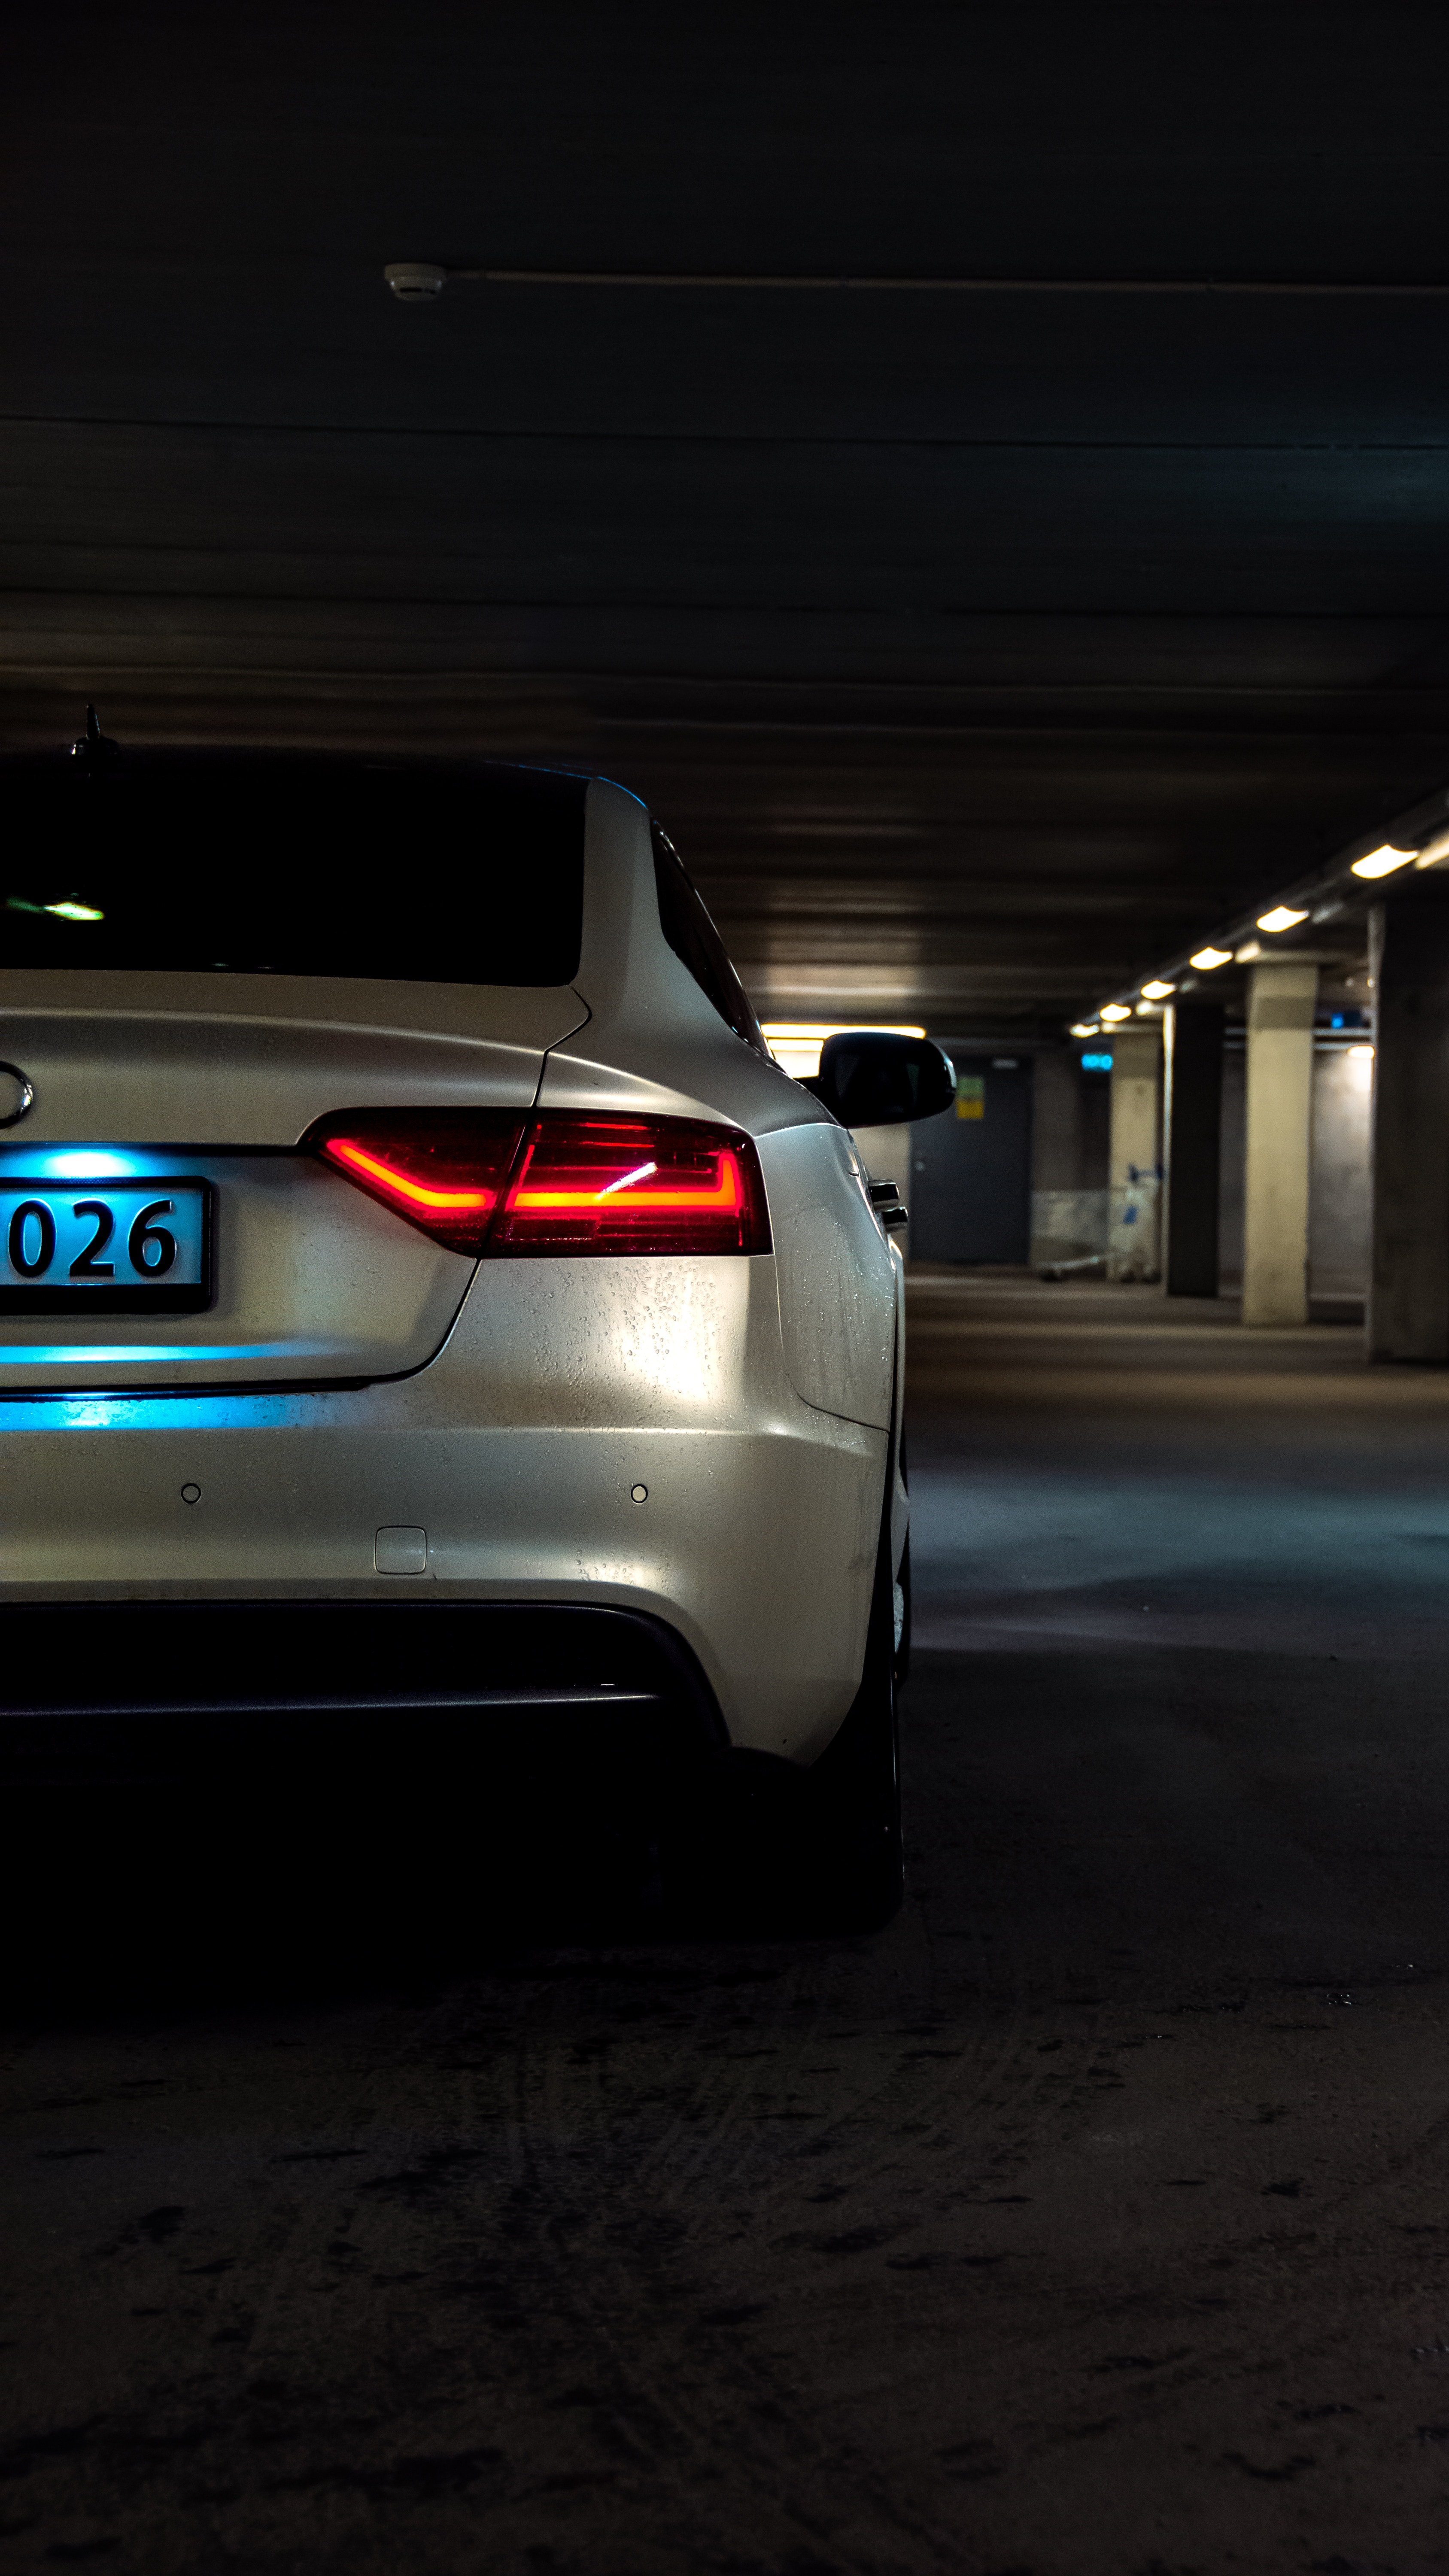 74202 download wallpaper Audi, Cars, Shine, Light, Back View, Rear View, Headlight, Audi A5 screensavers and pictures for free